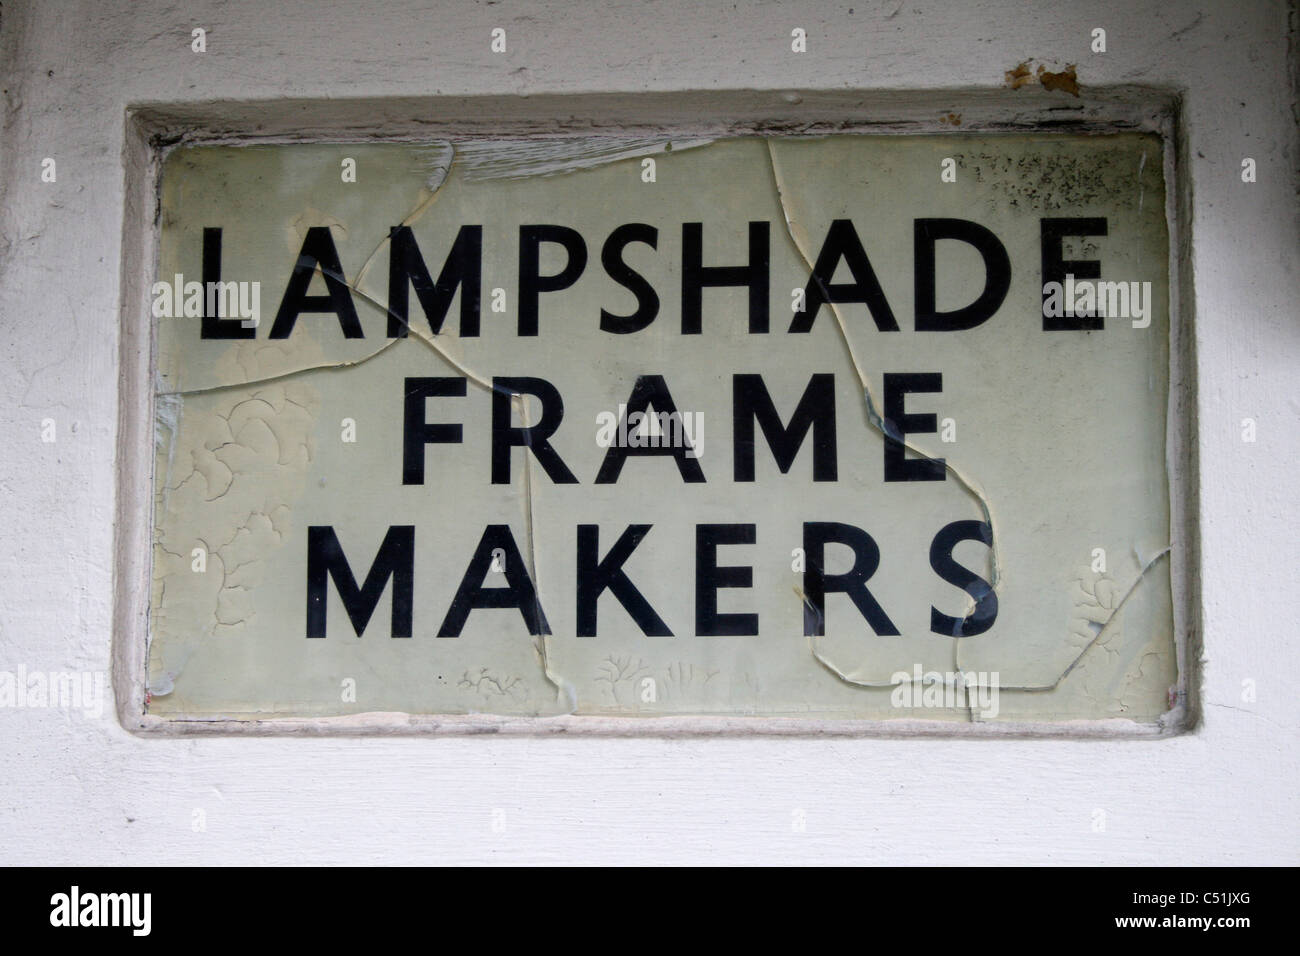 Lampshade and frame makers sign Stock Photo: 37530824 - Alamy